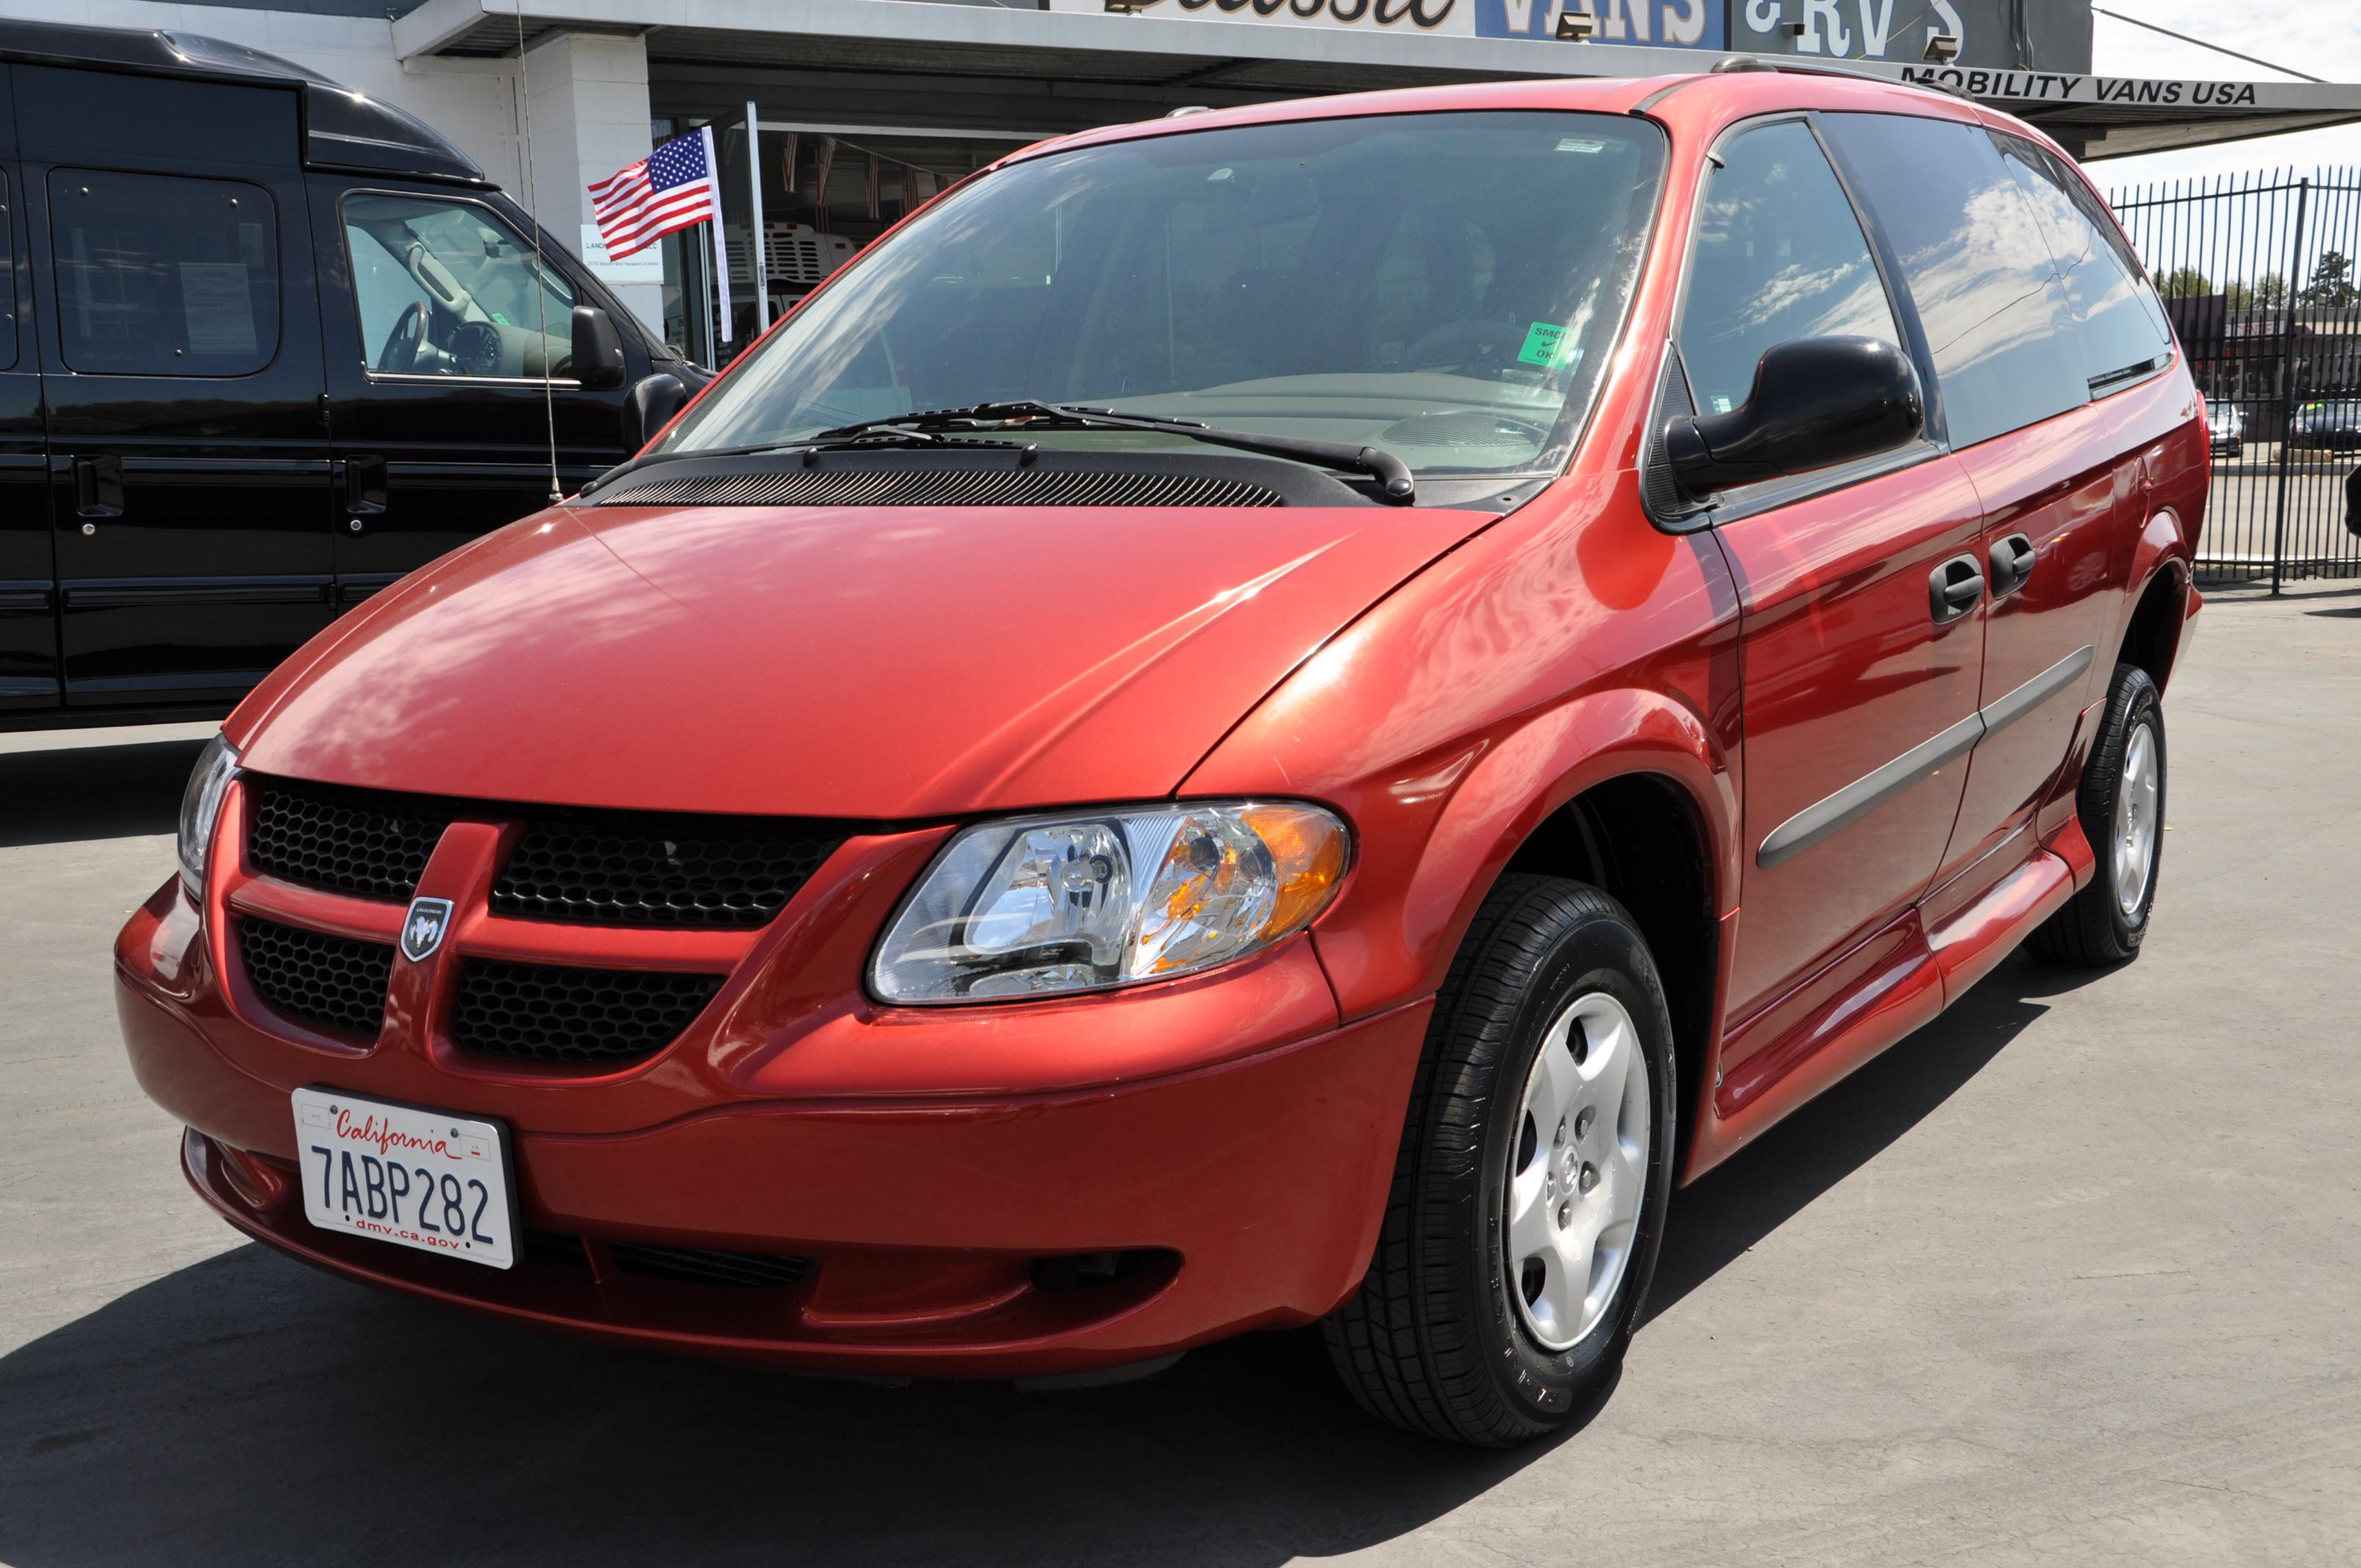 Dodge Caravan Dr Grand Se Wb Red Power Brakes on 1990 Dodge Grand Caravan